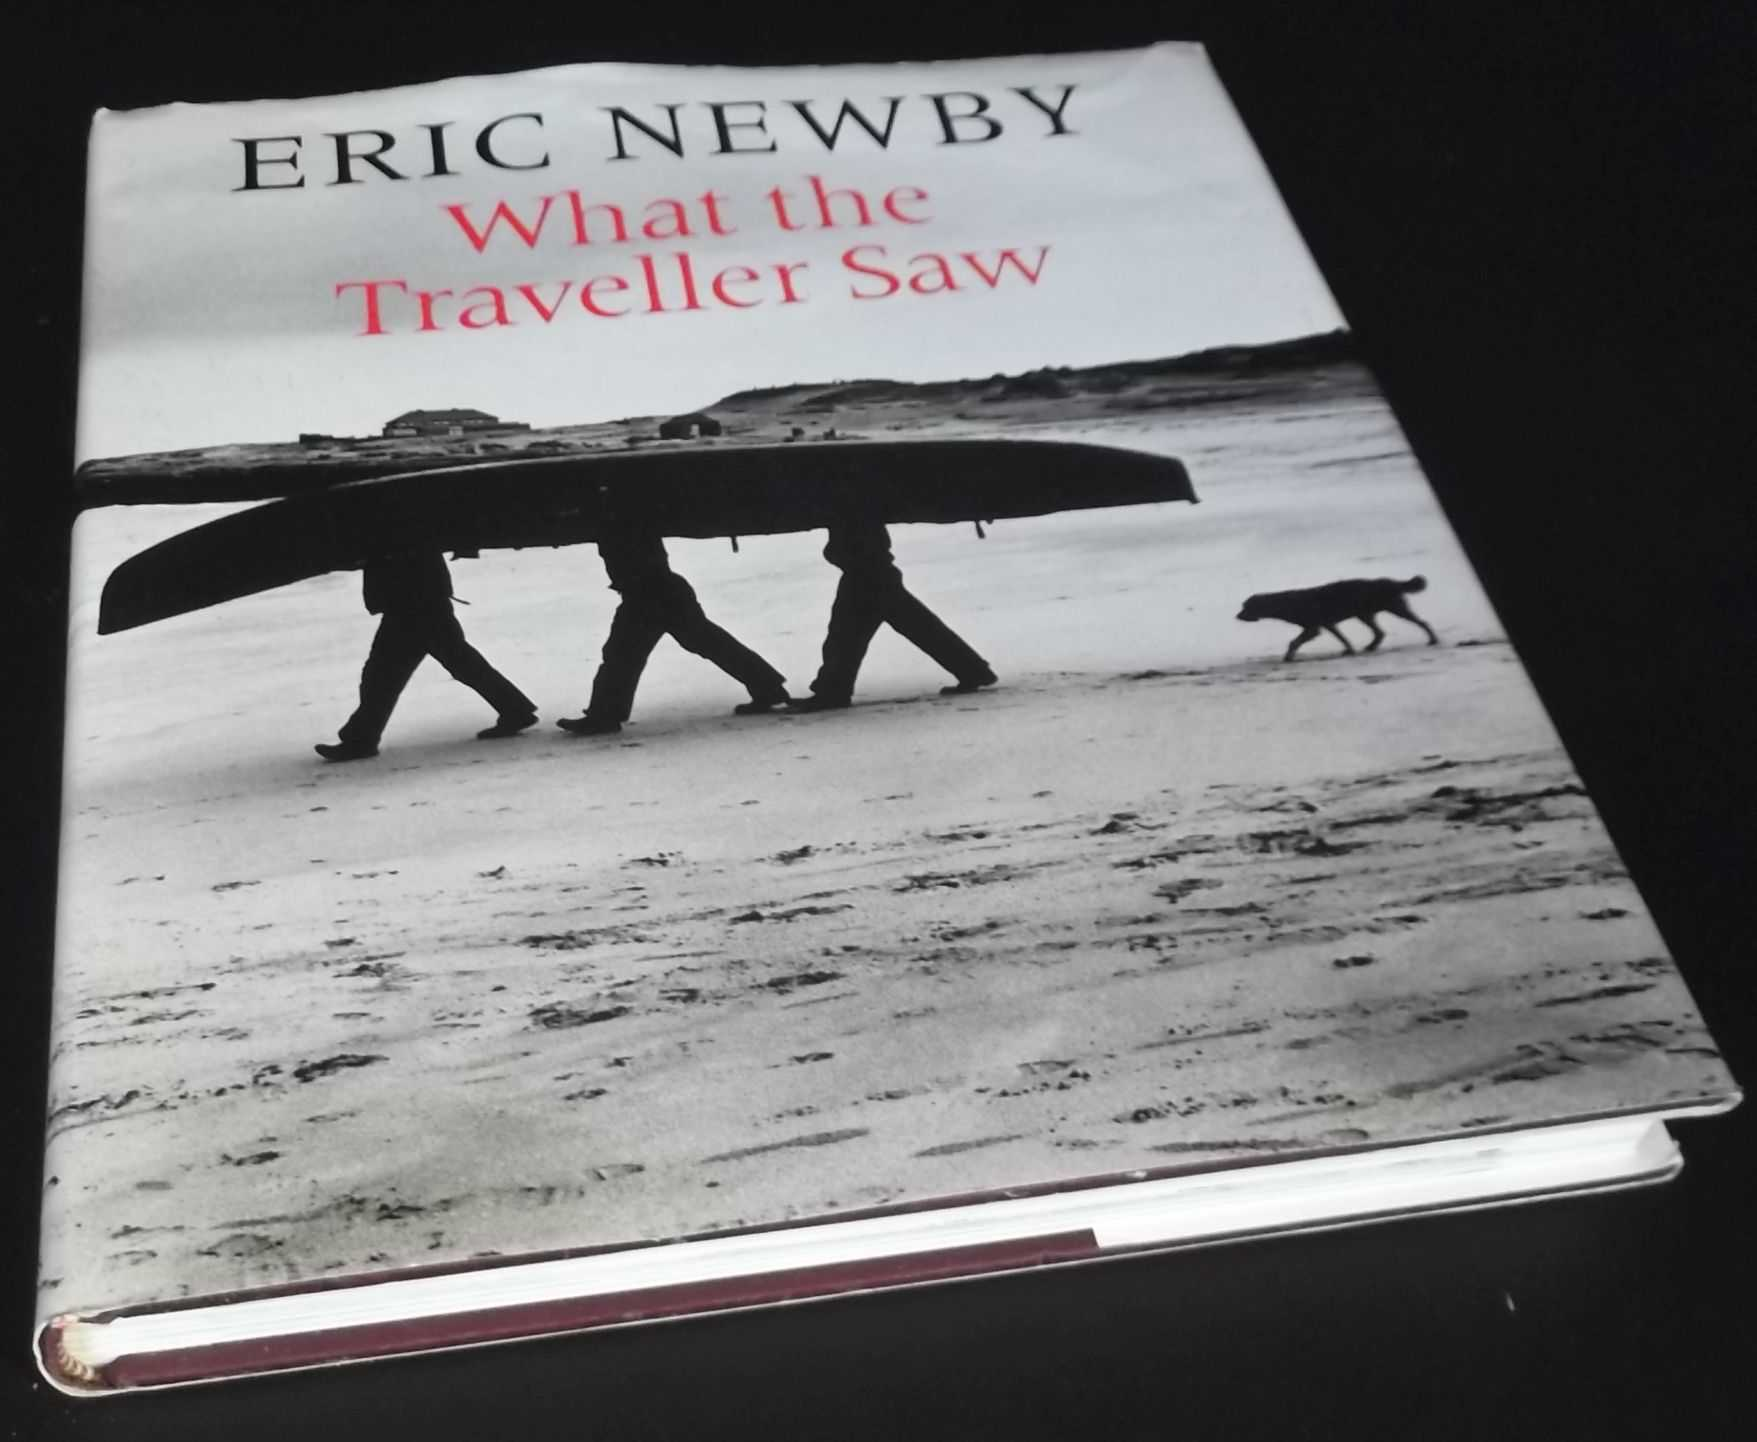 ERIC NEWBY - What the Traveller Saw